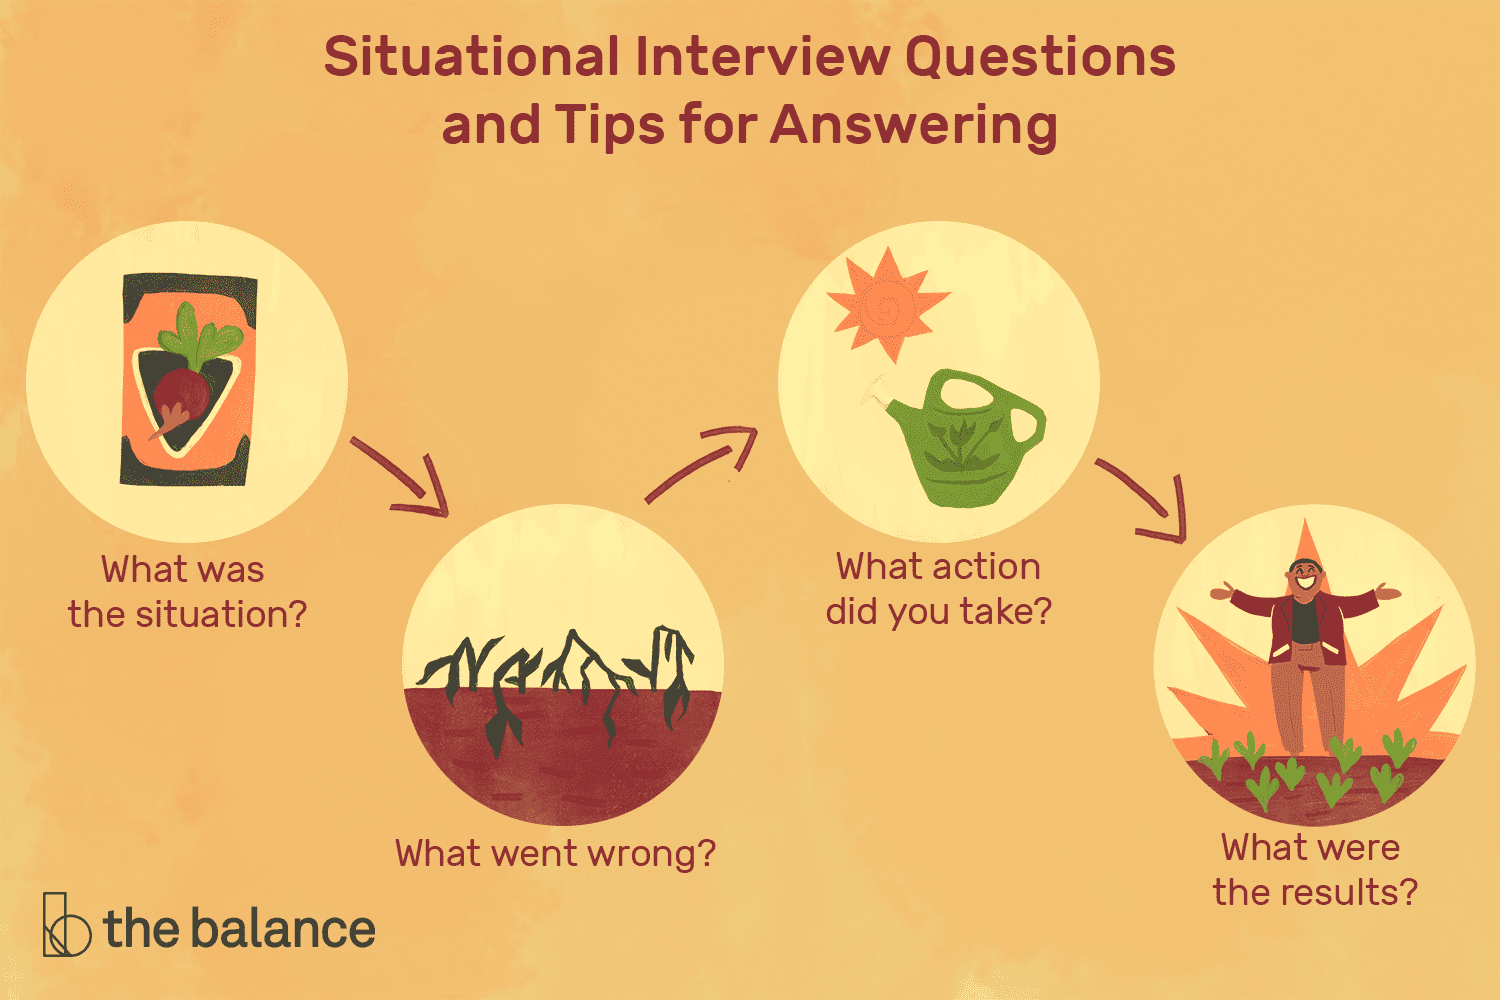 Situational Interview Questions and Tips for Answering